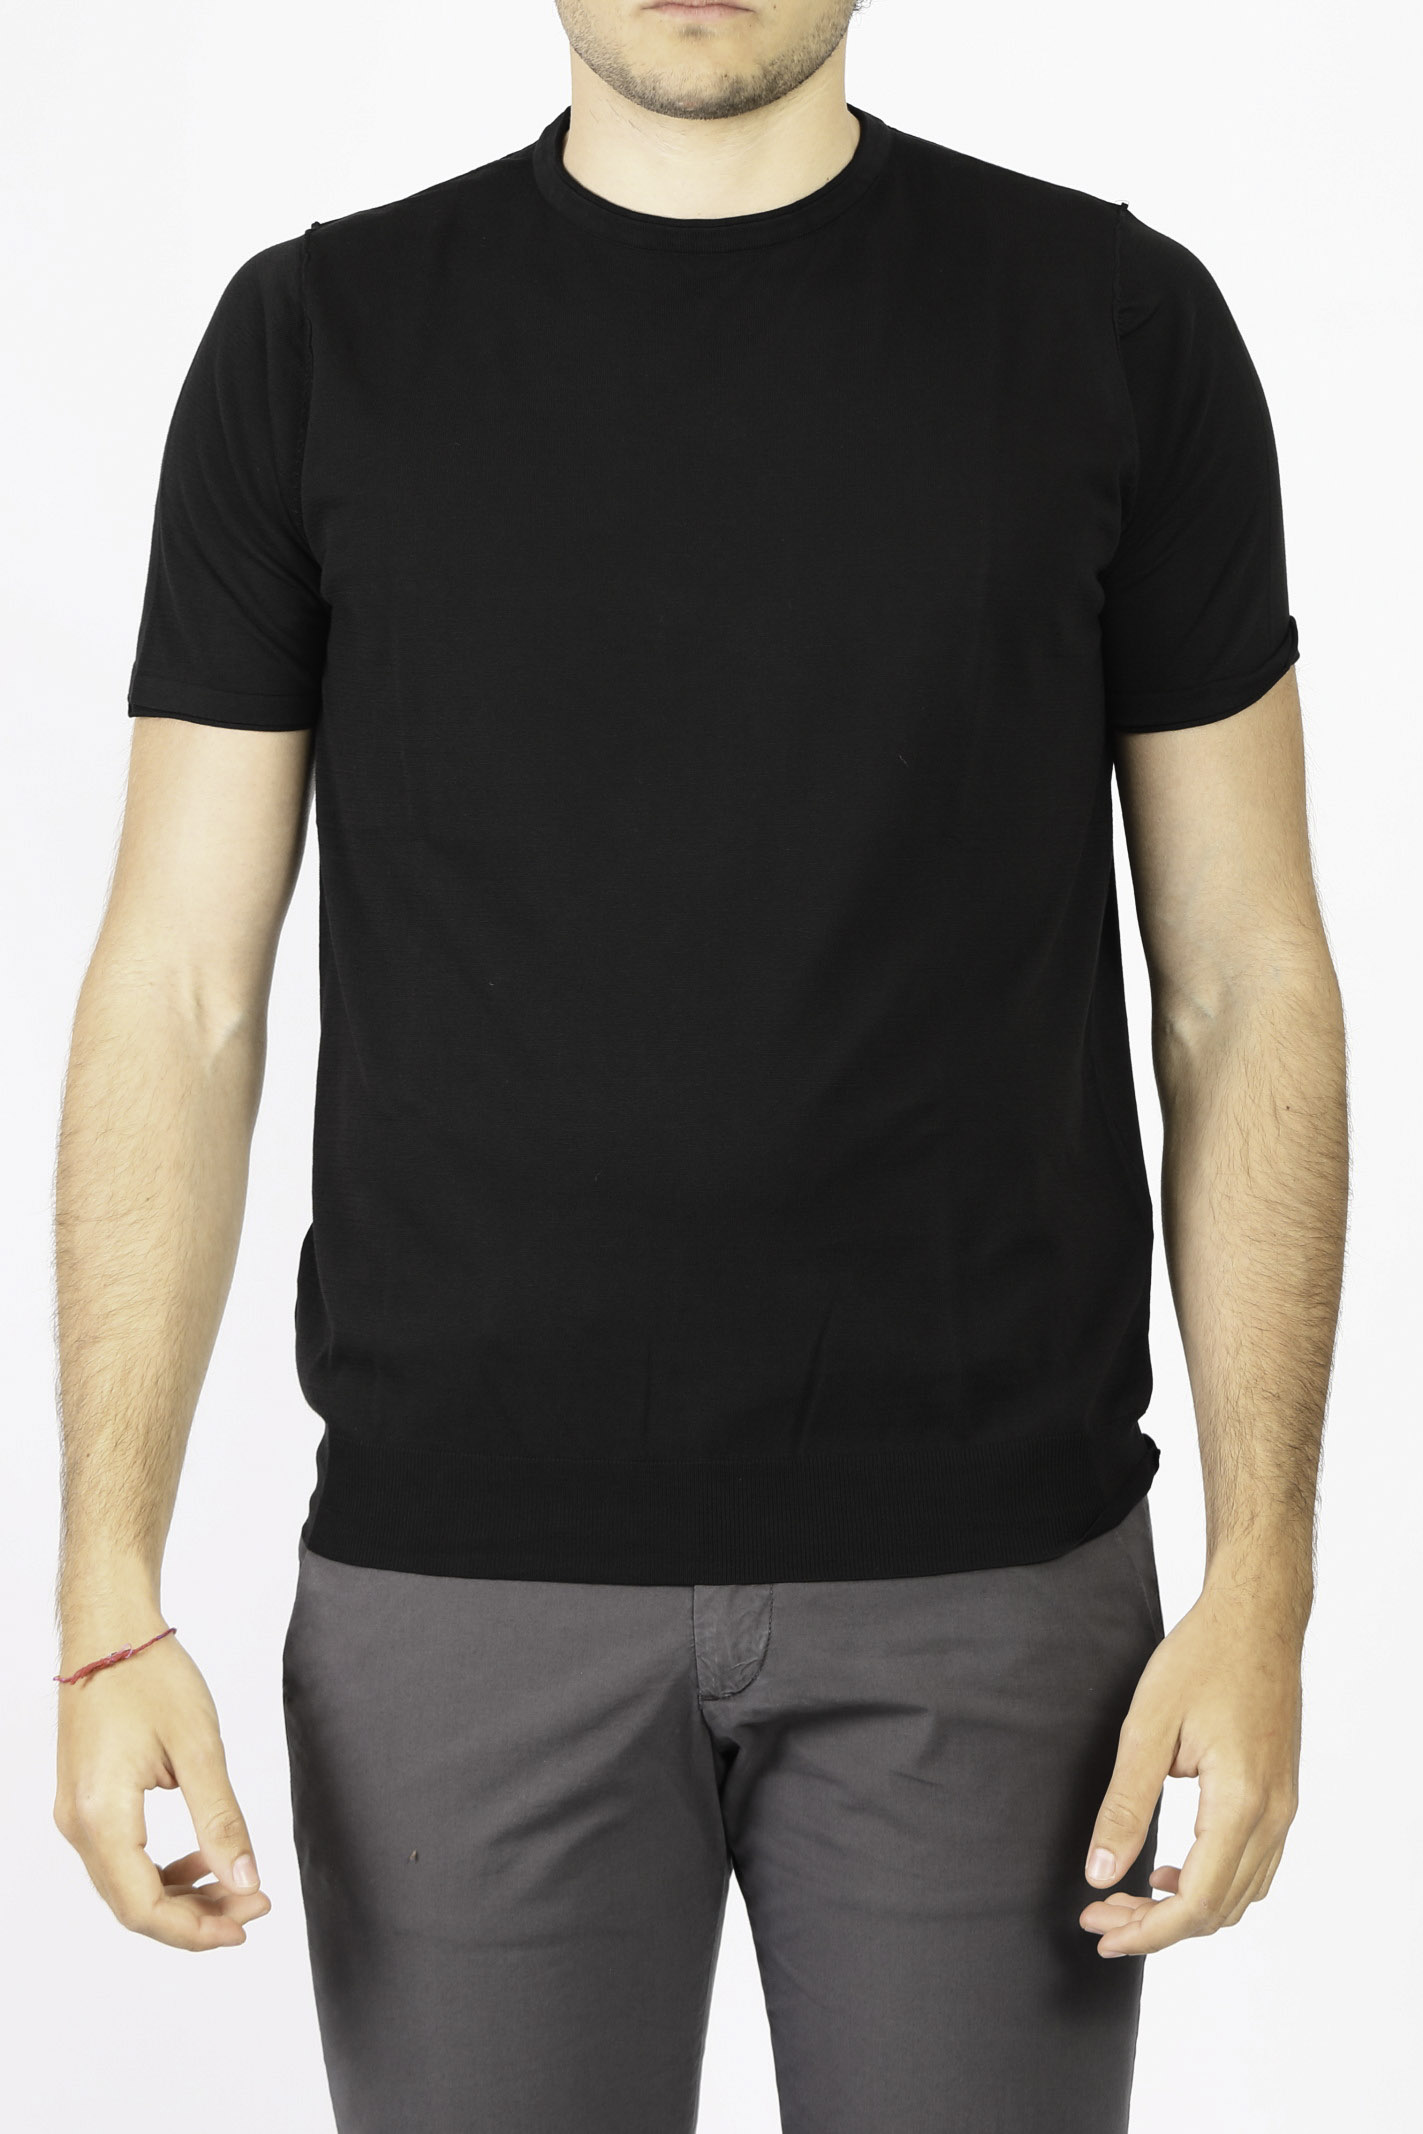 T-SHIRT IN COTONE JEORDIE'S   T-shirt   60554999